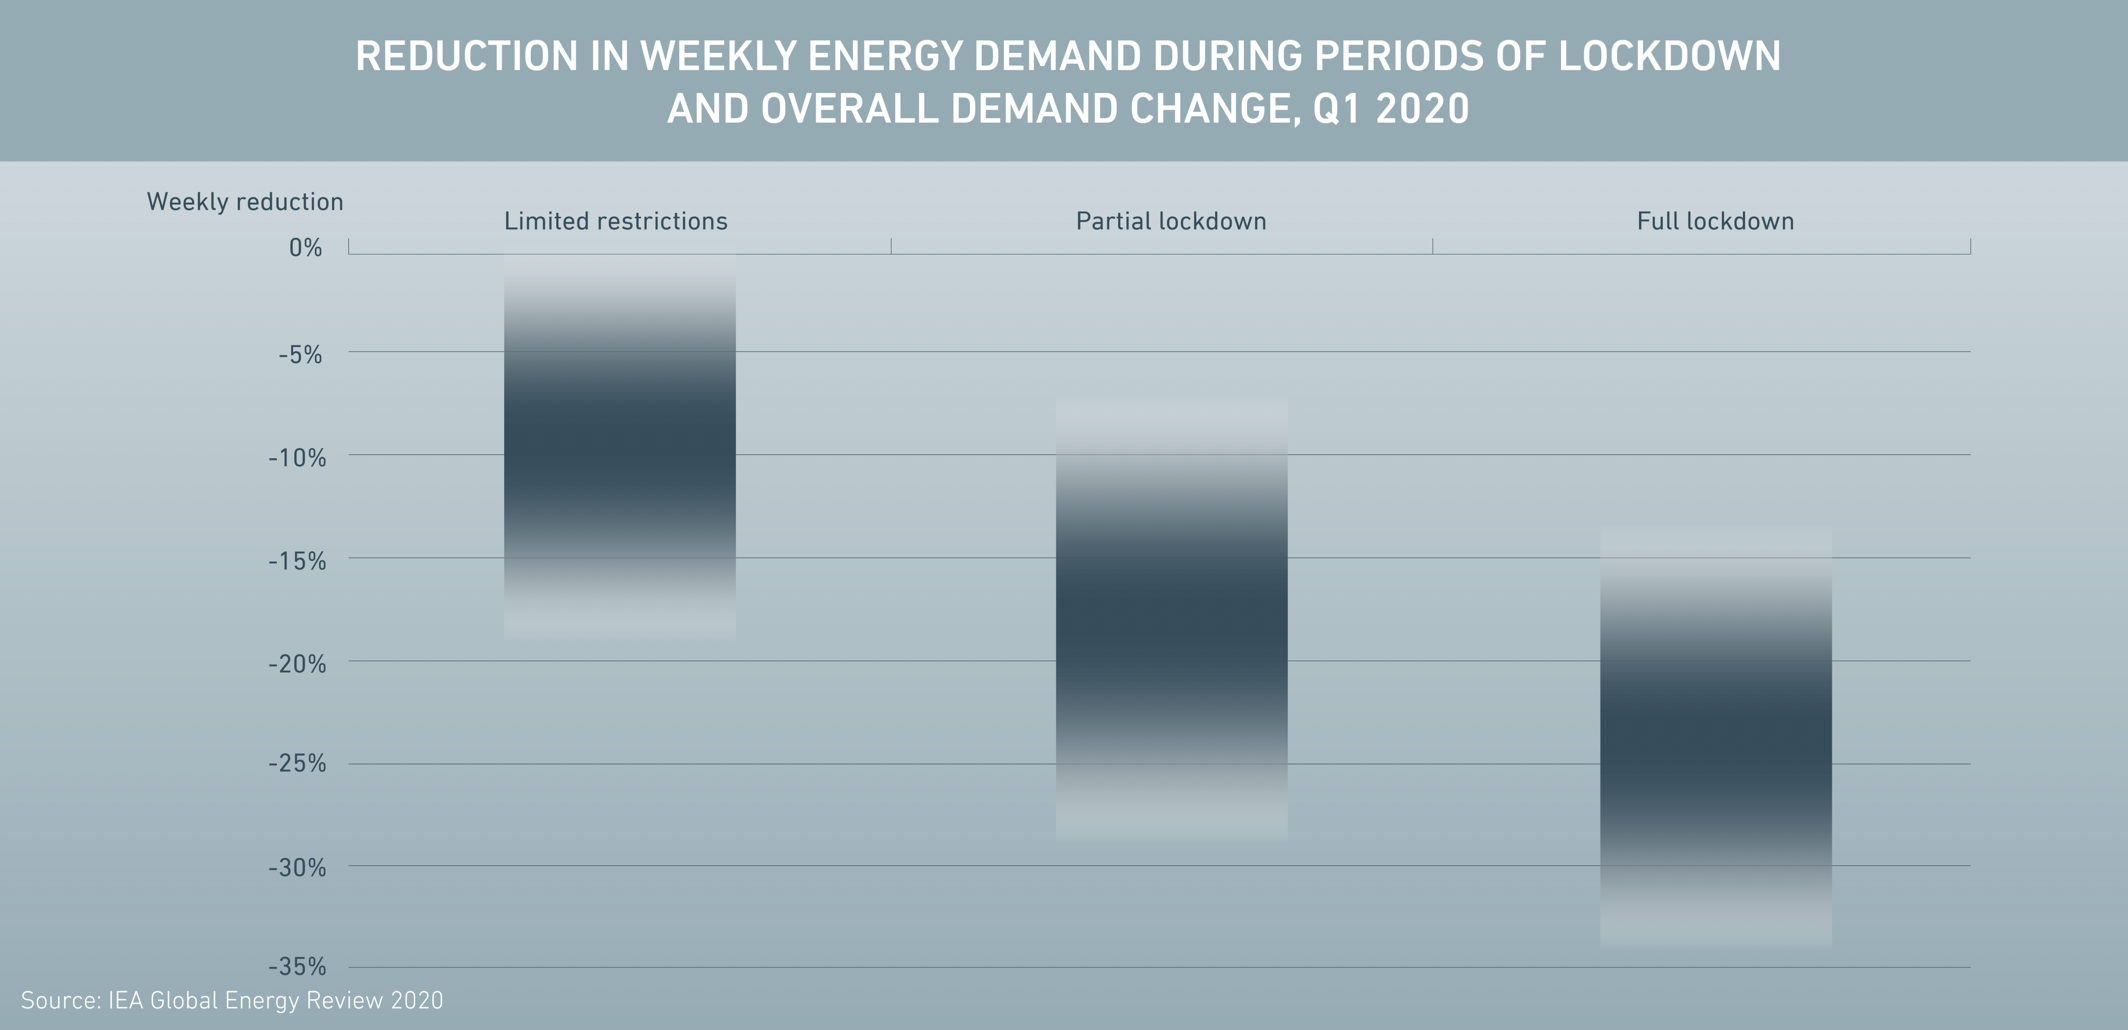 A substantial drop in energy demand ensued during lockdowns around the world